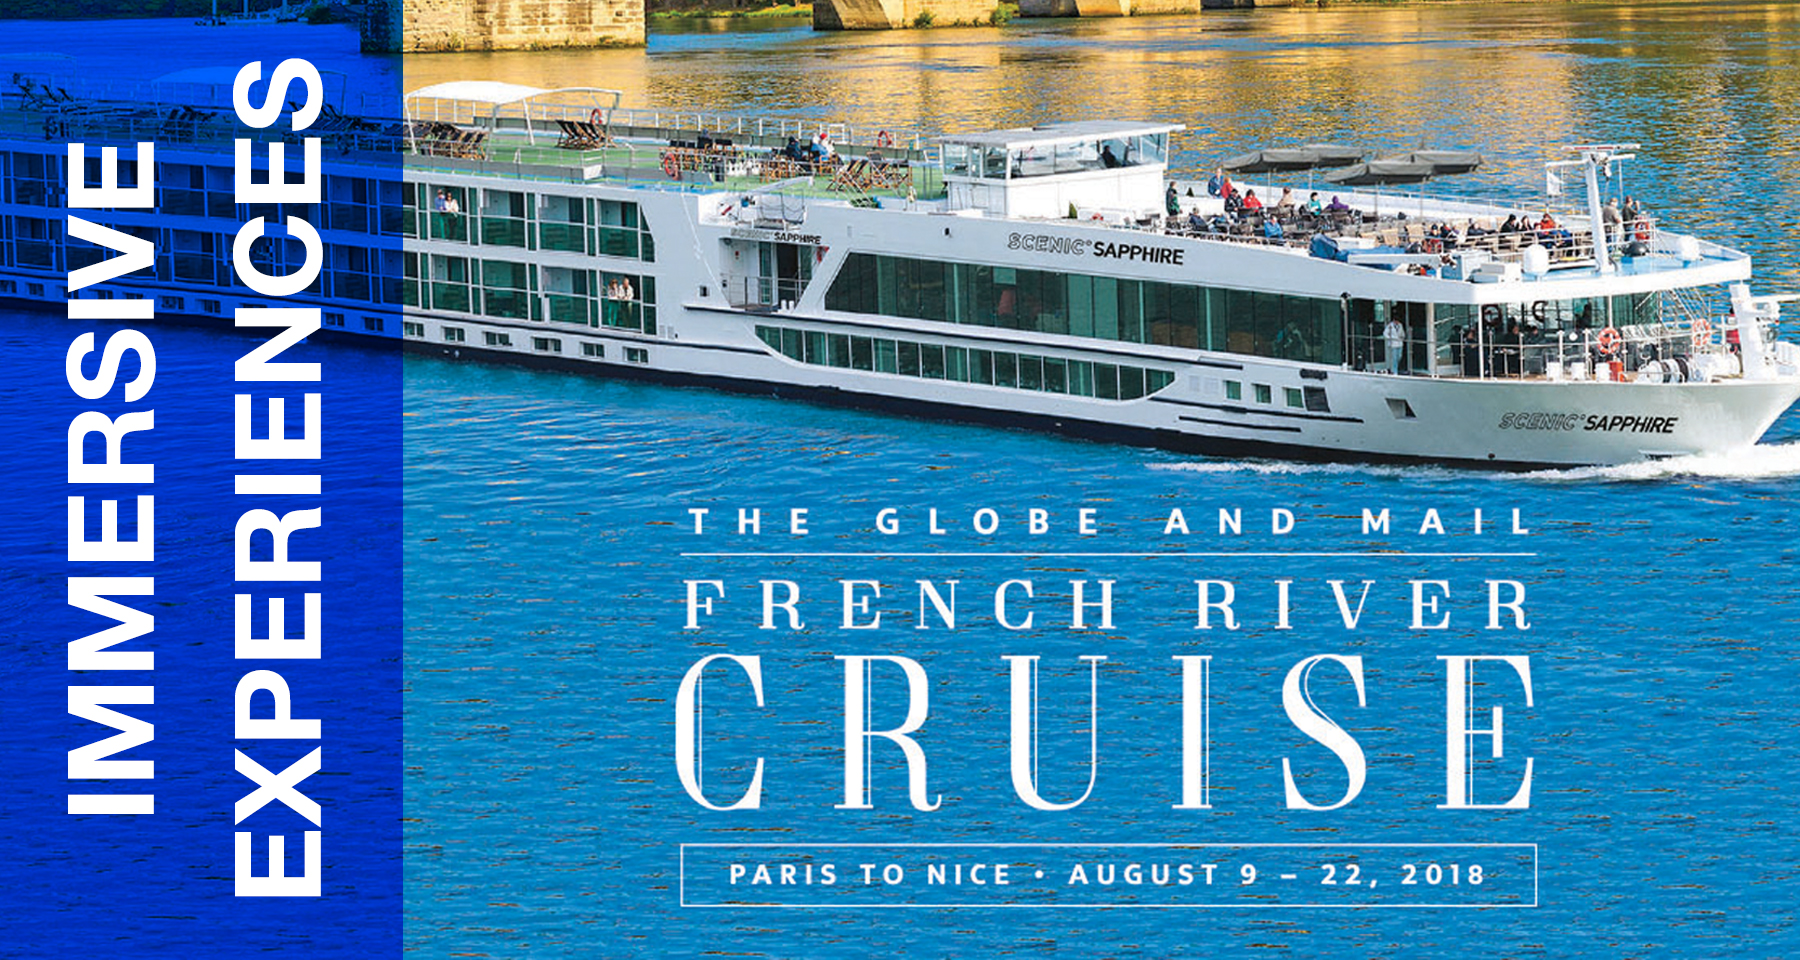 Globe River Cruise offers immersive brand extension, experience